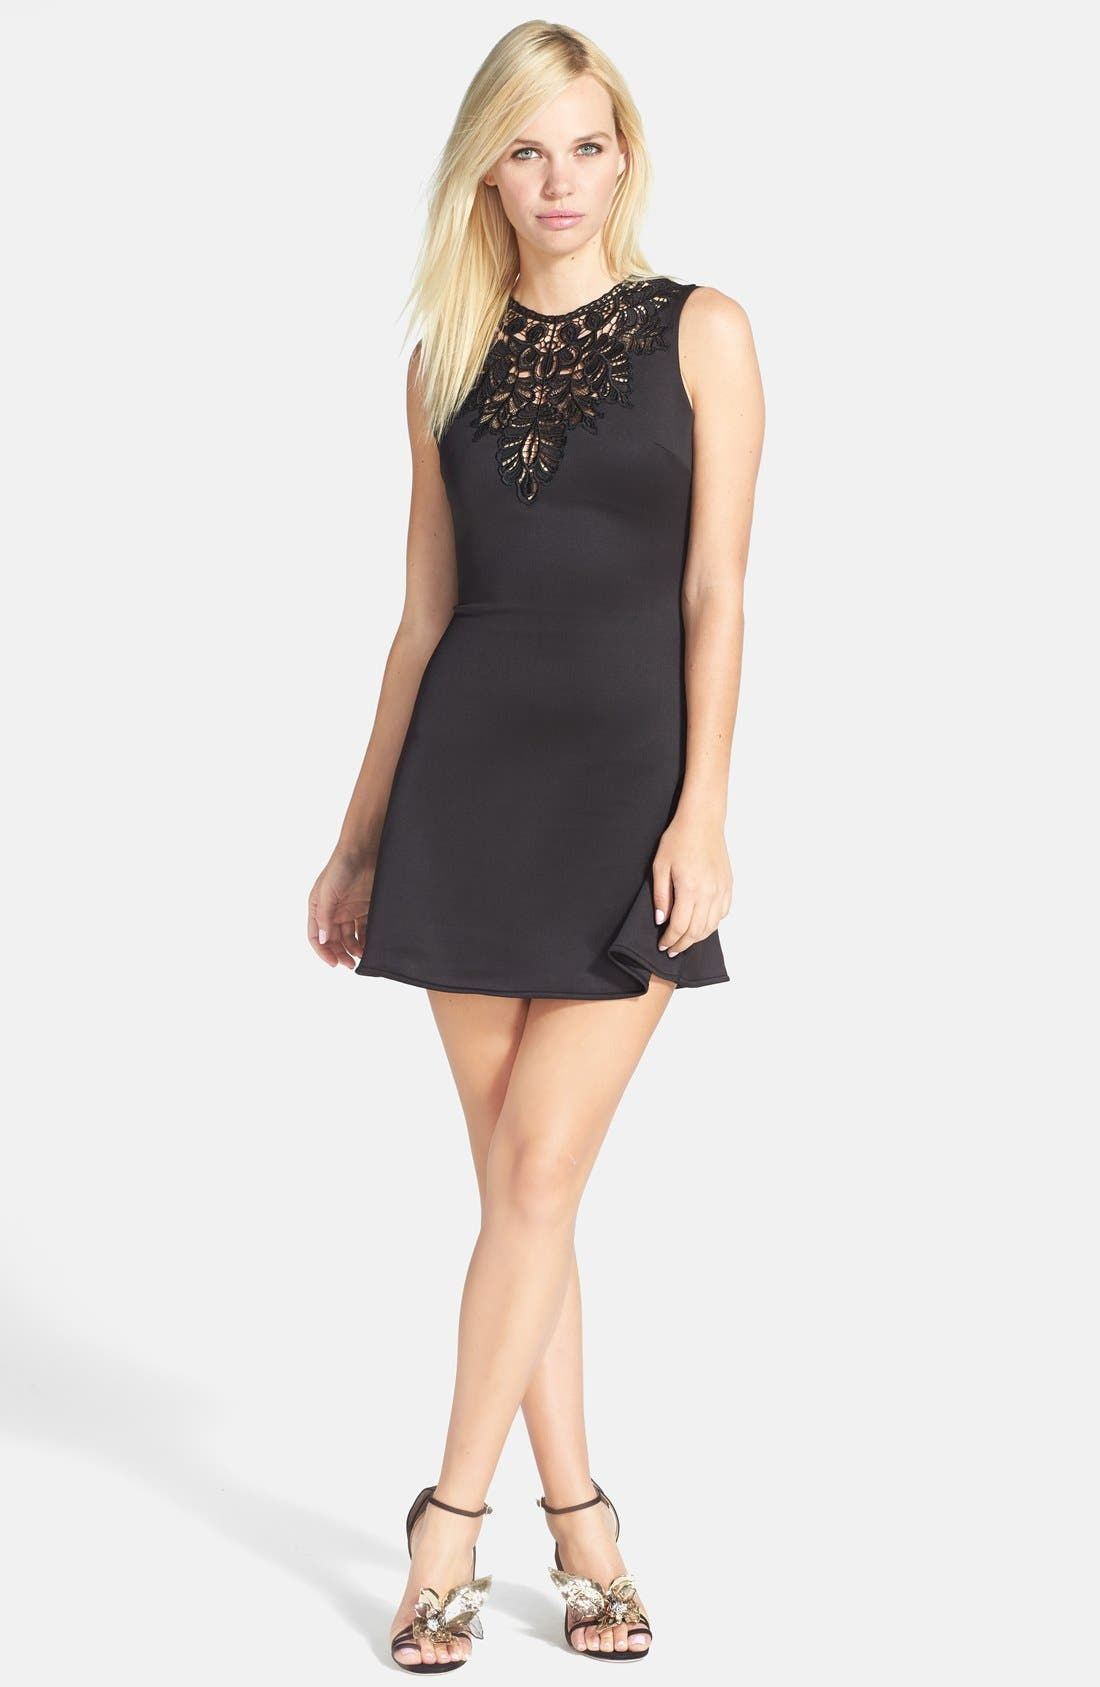 Alternate Image 1 Selected - One Rad Girl 'Darlene' Open Back Crochet Inset Skater Dress